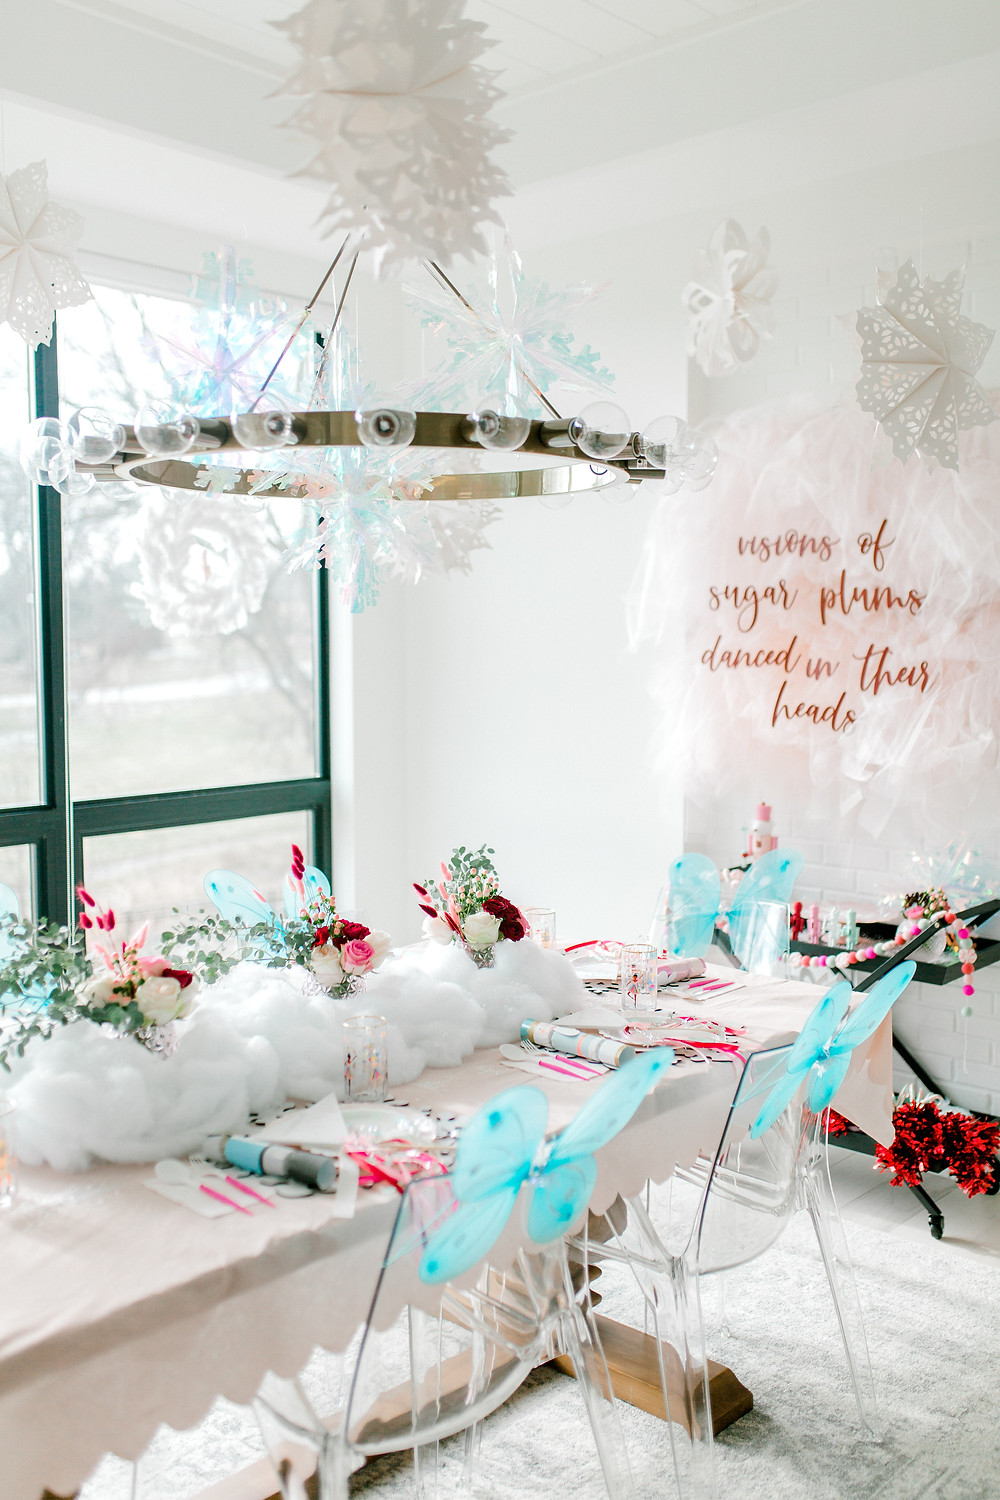 Sugar plum nutcracker birthday party with hanging paper and clear snowflakes and blue butterfly wings with floral centrepieces.